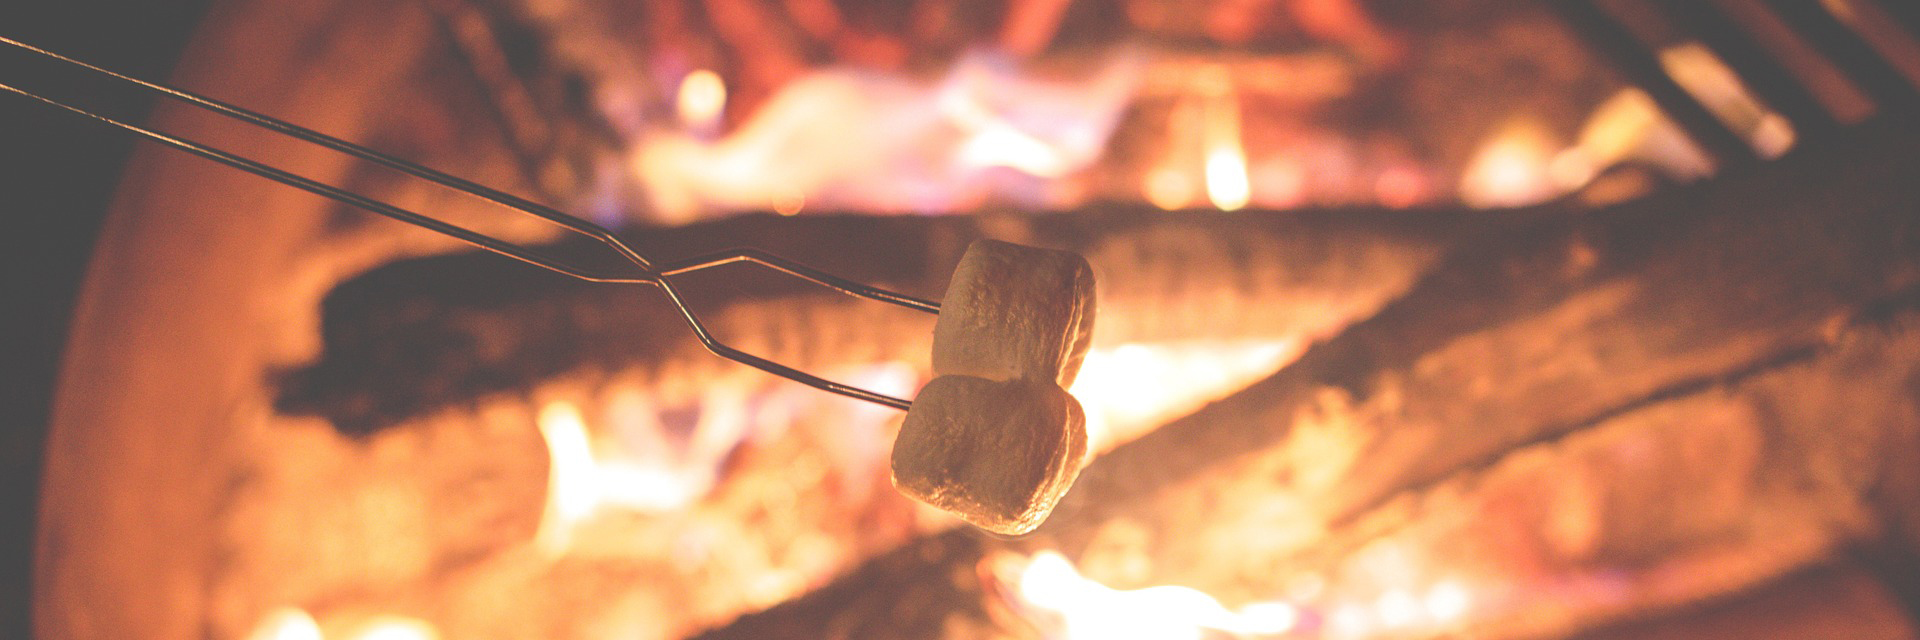 toasting marshmallows over flames